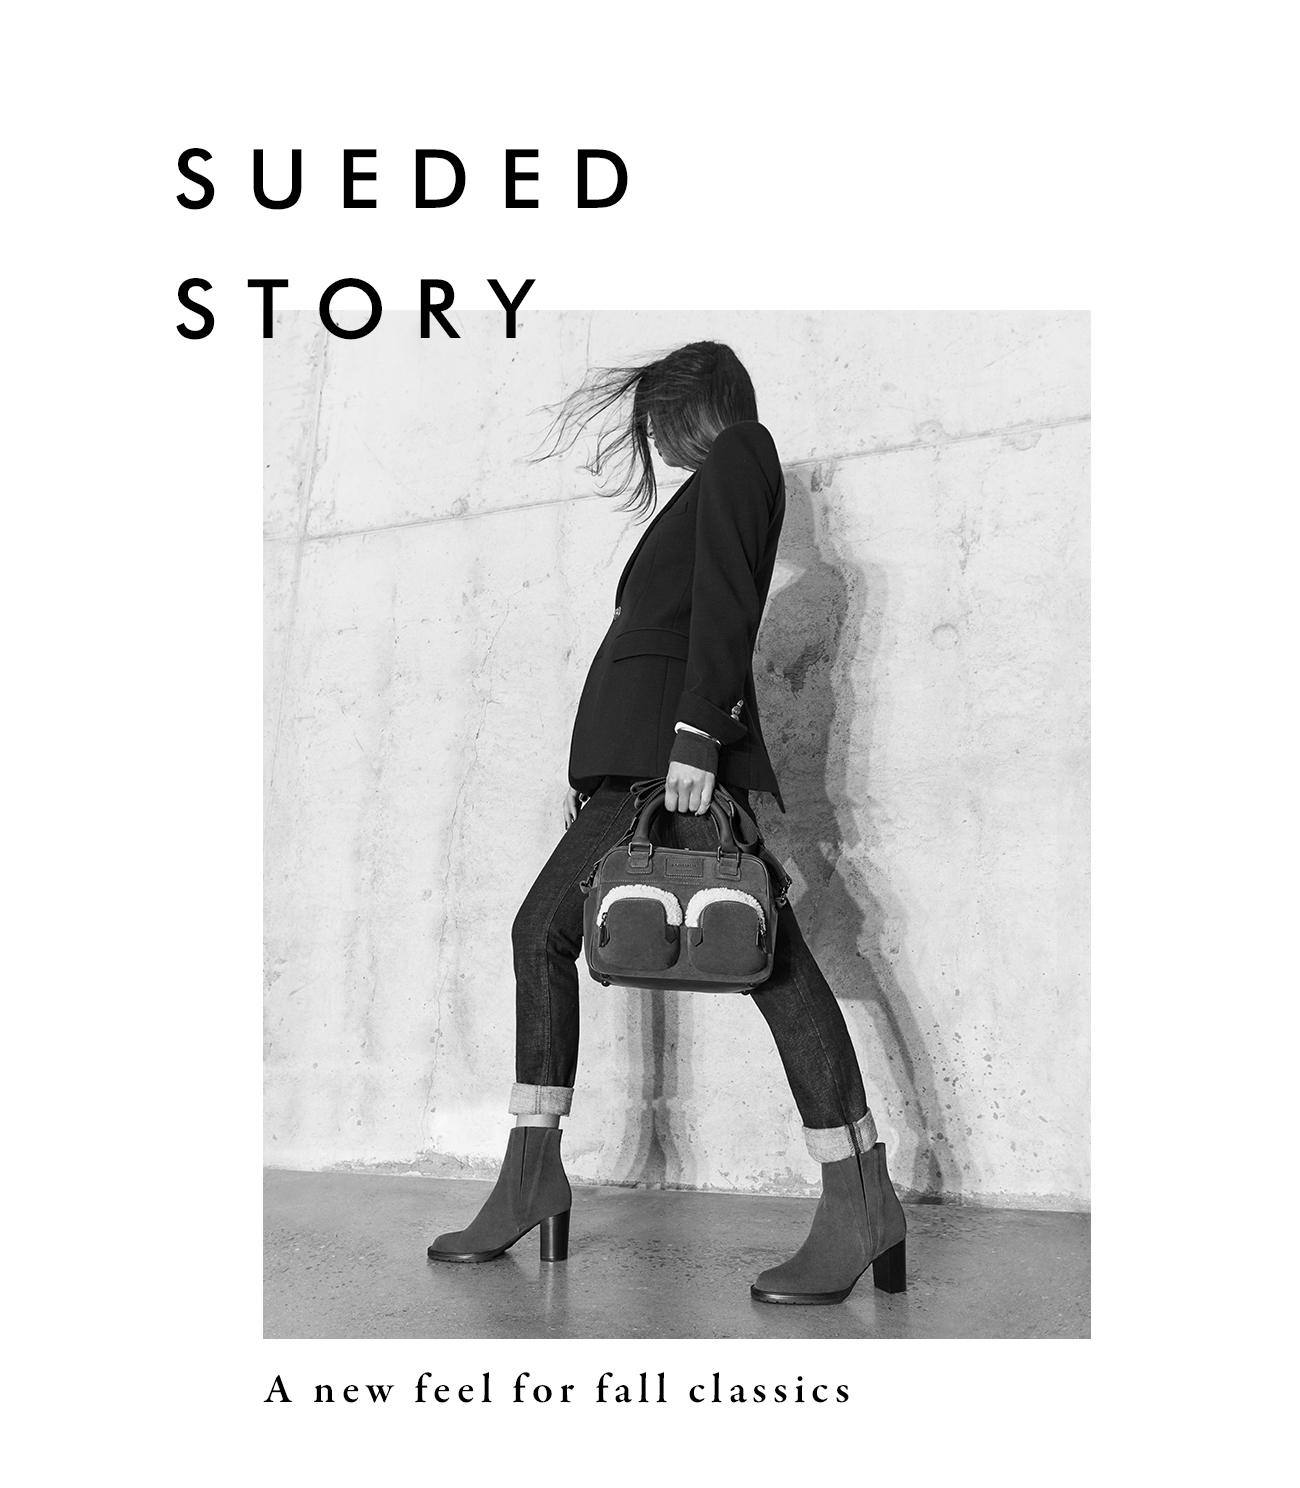 Sueded Story